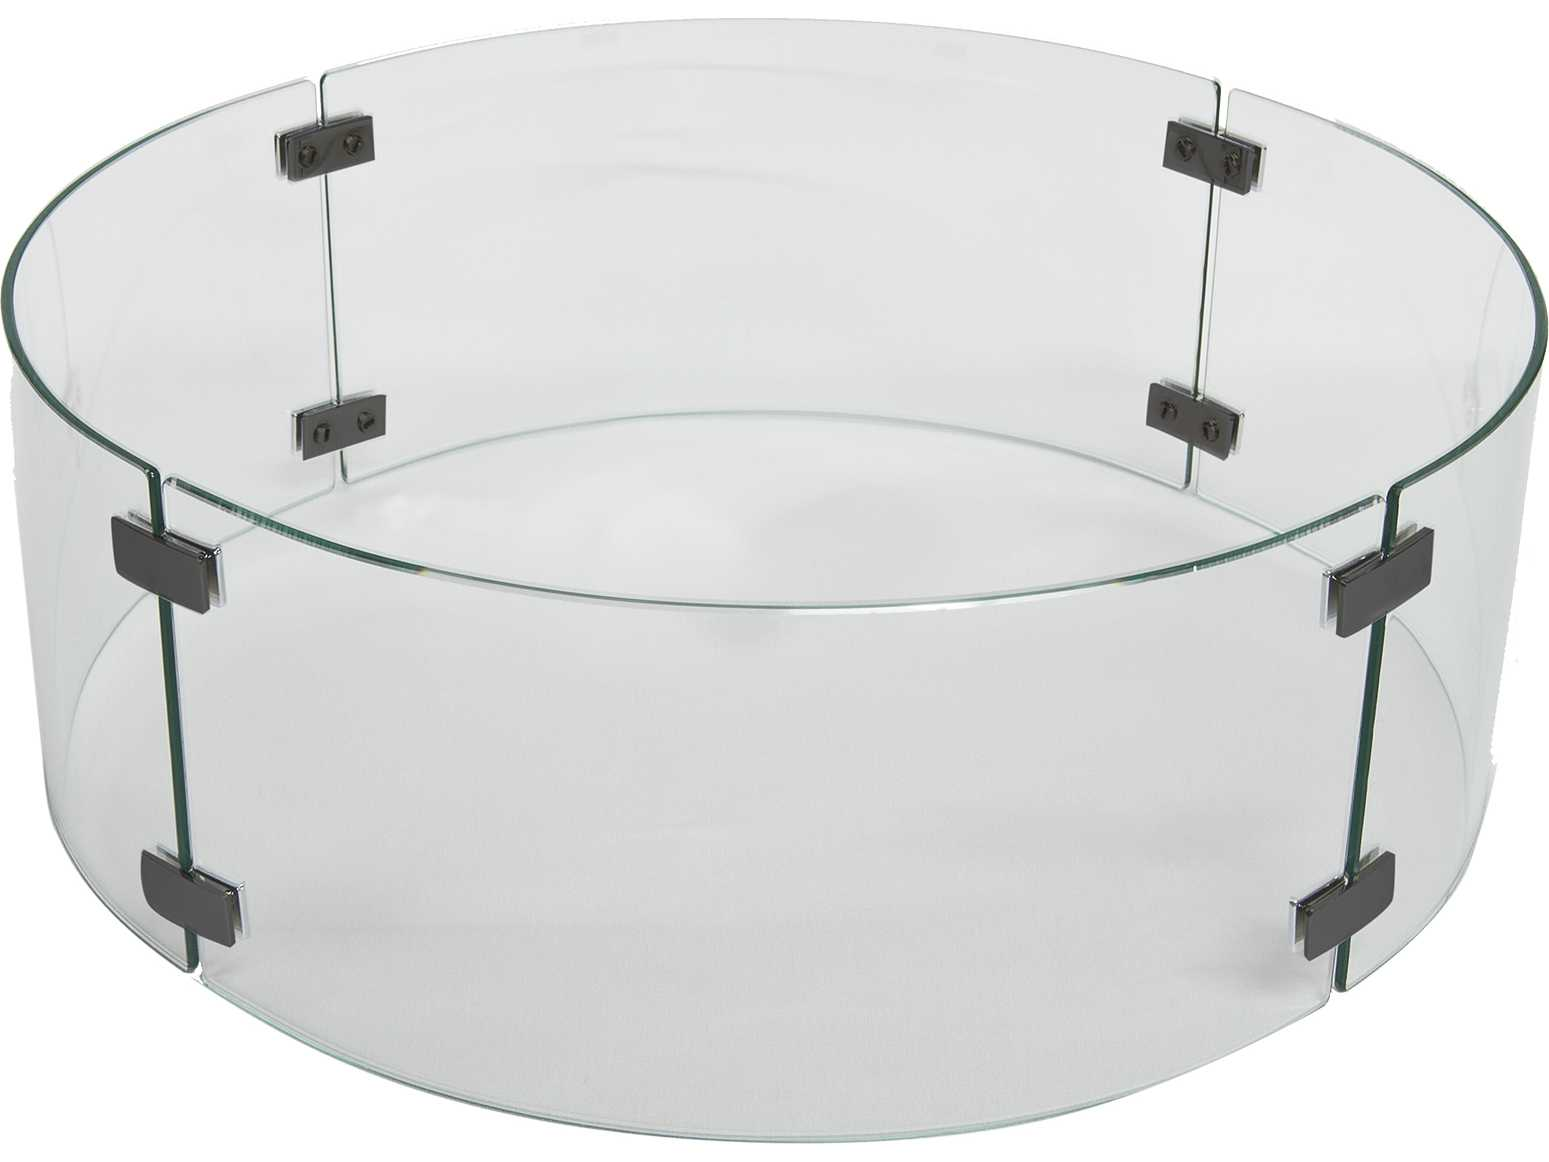 Ow Lee Casual Small Round Glass Fire Guard Ow51142g